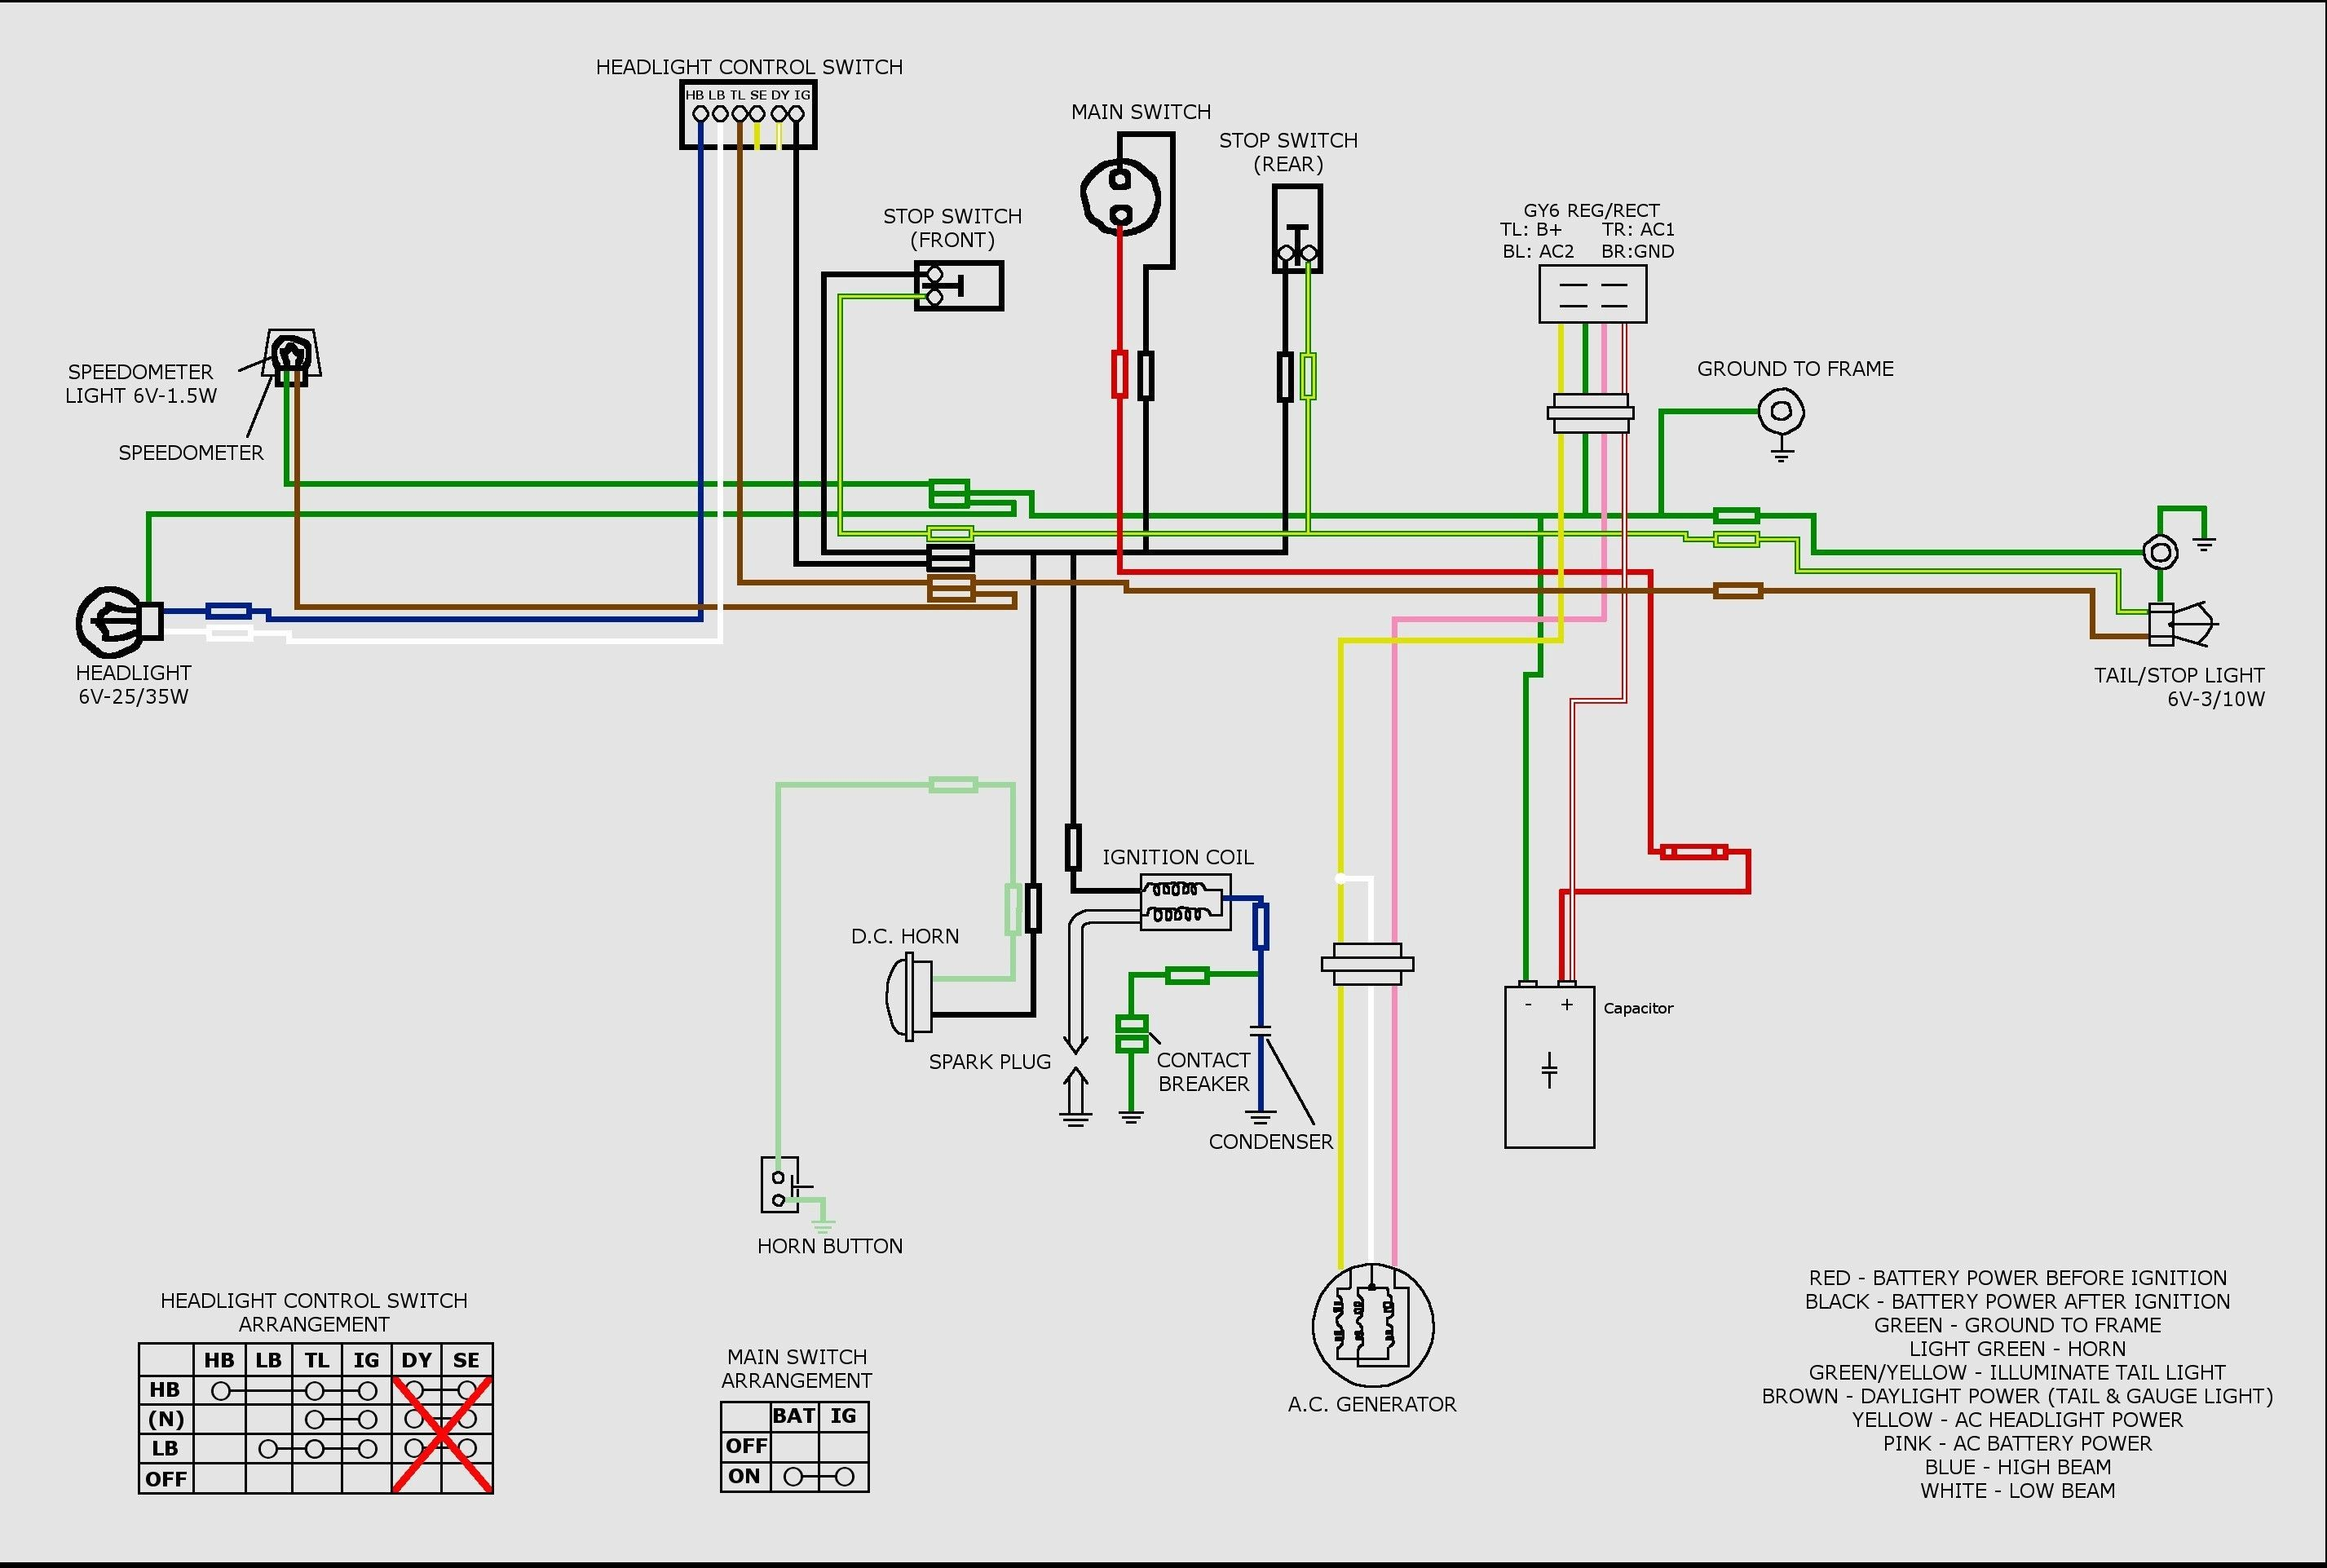 Diagram Of Car Brakes Gy6 Wiring Diagram Awesome 150cc Gy6 Wiring Diagram within Of Diagram Of Car Brakes